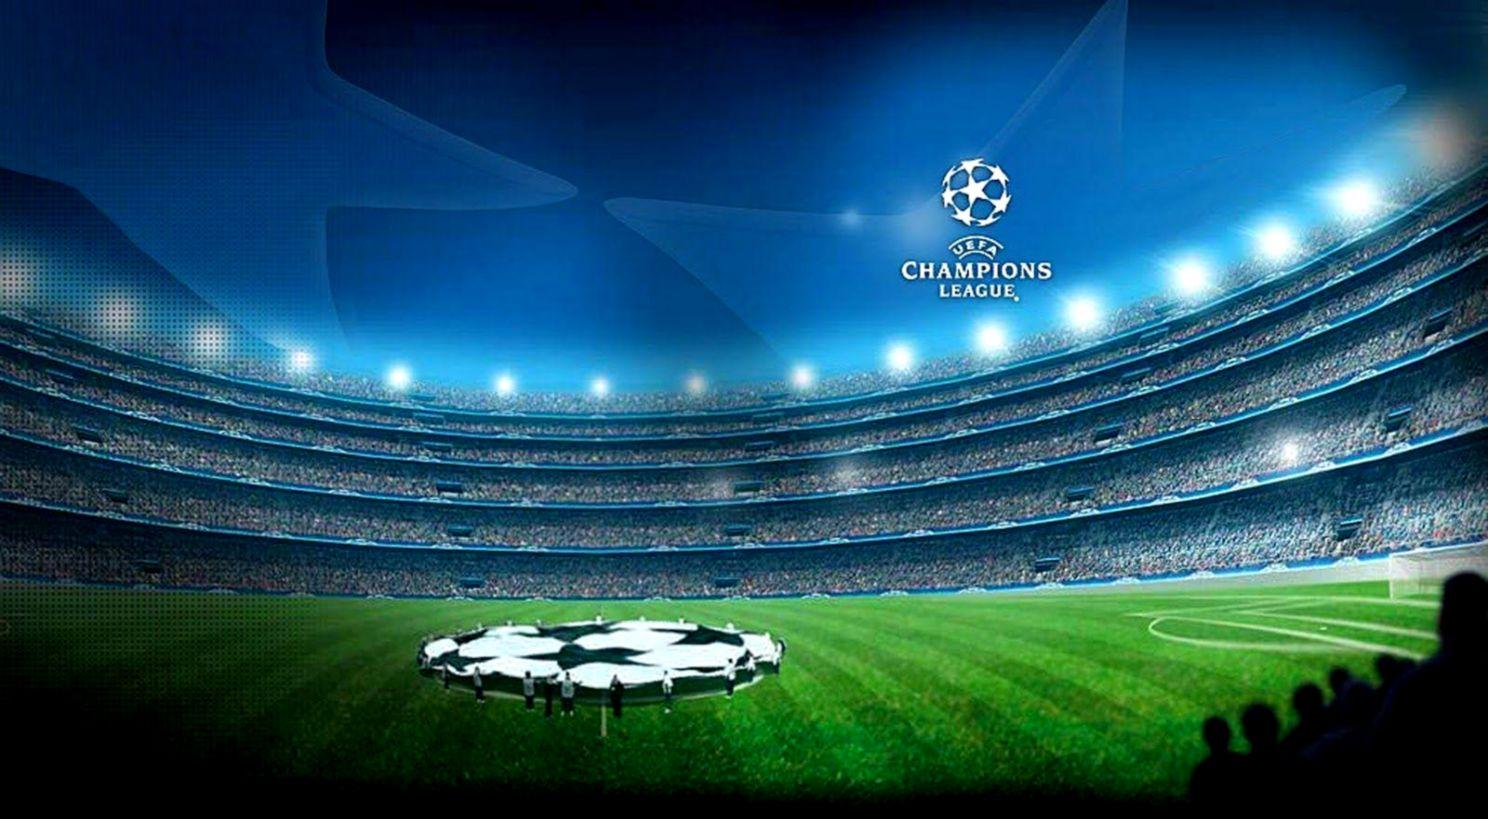 Champions League Desktop Wallpapers